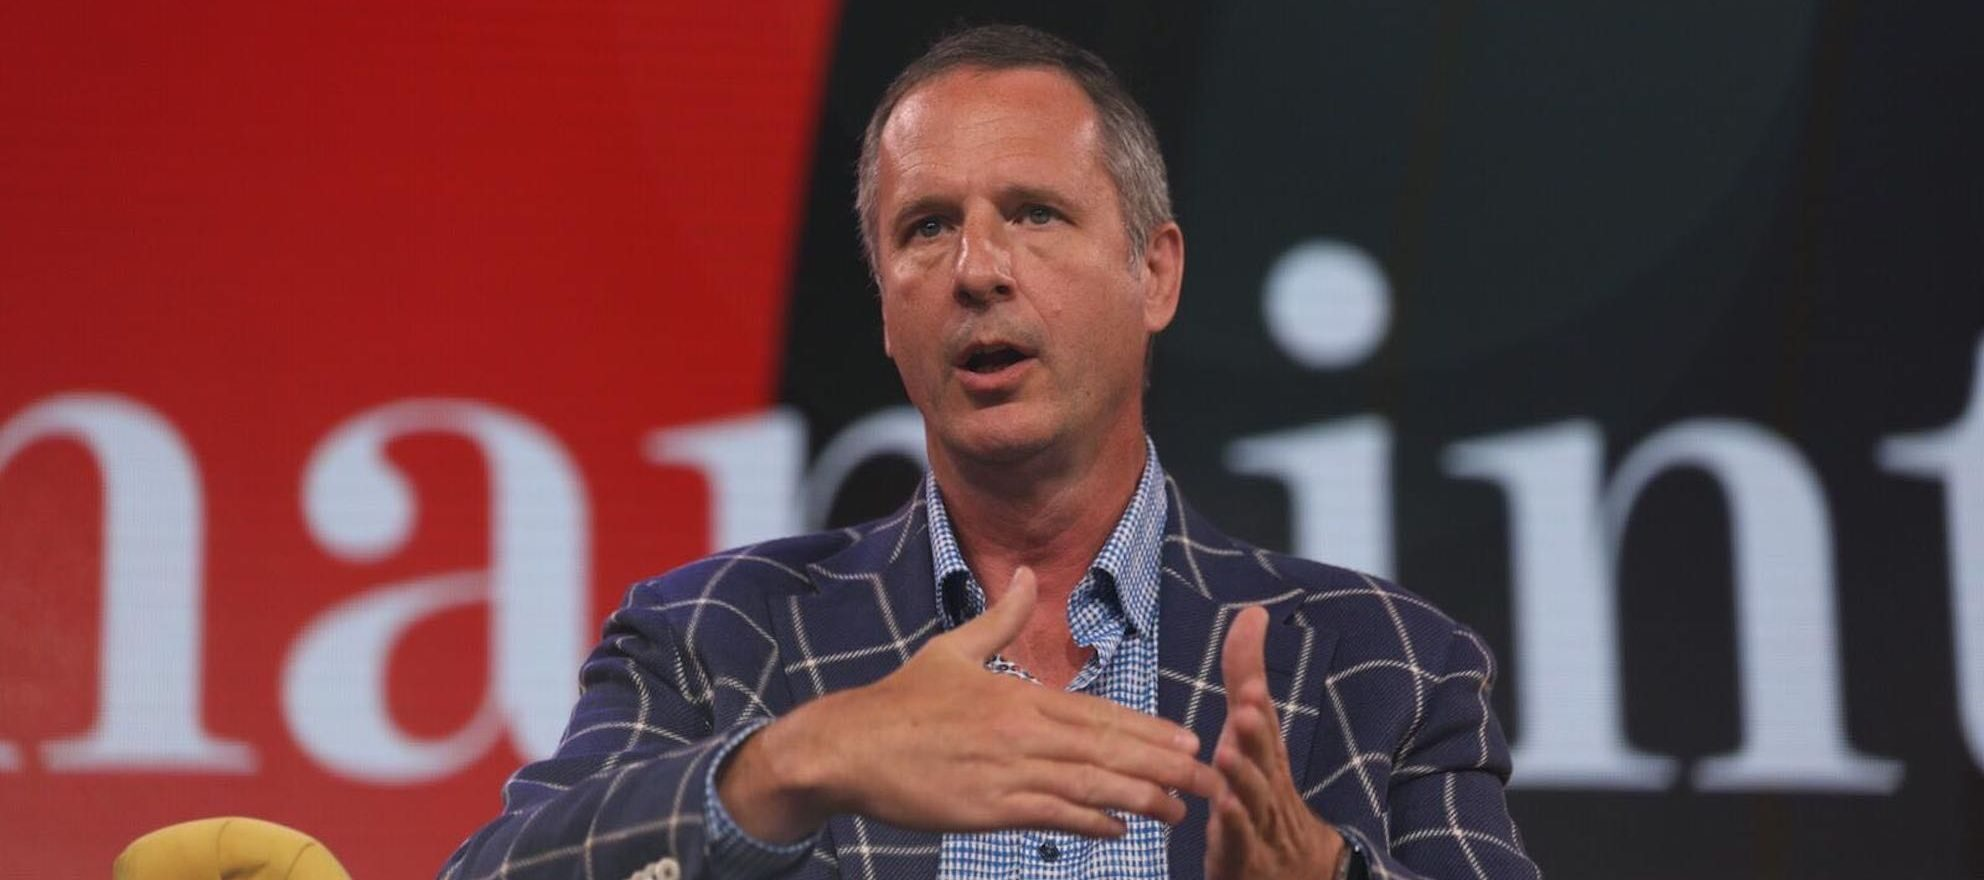 EXp CEO on how his company's profit share differs from KW